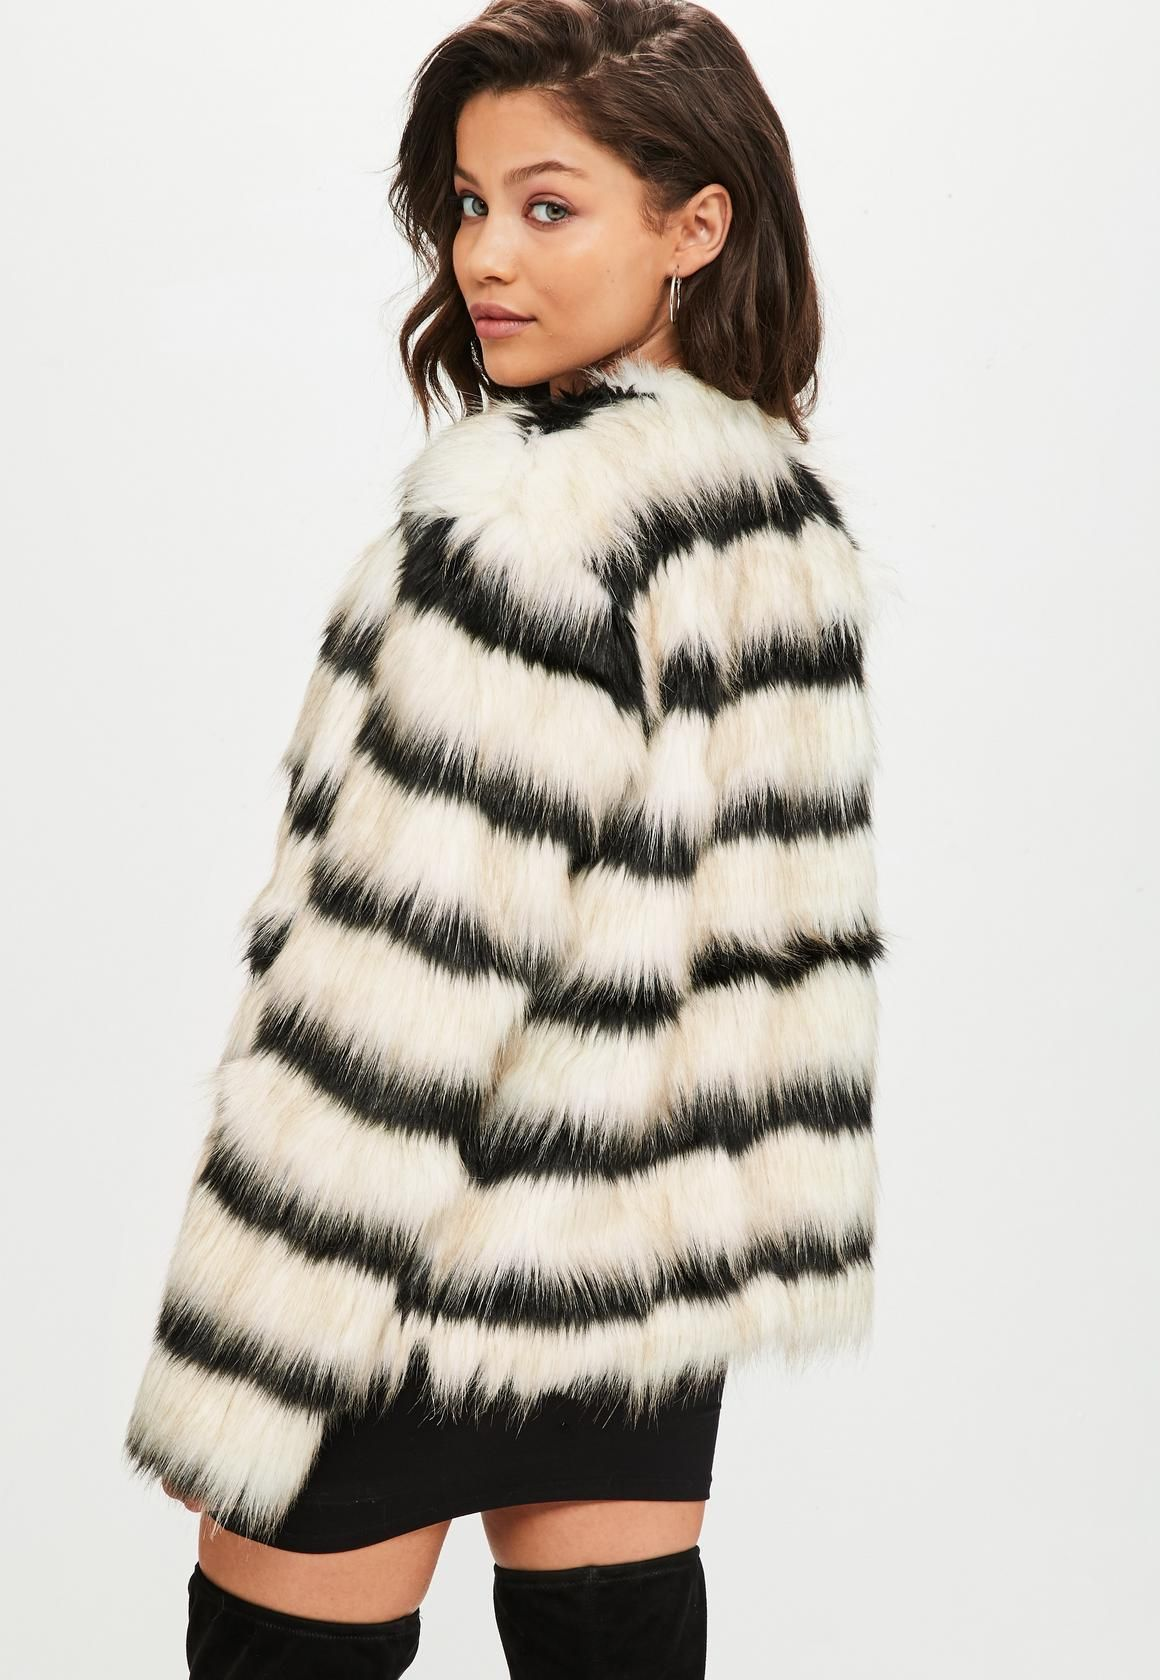 Missguided Cream Striped Faux Fur Coat (With images